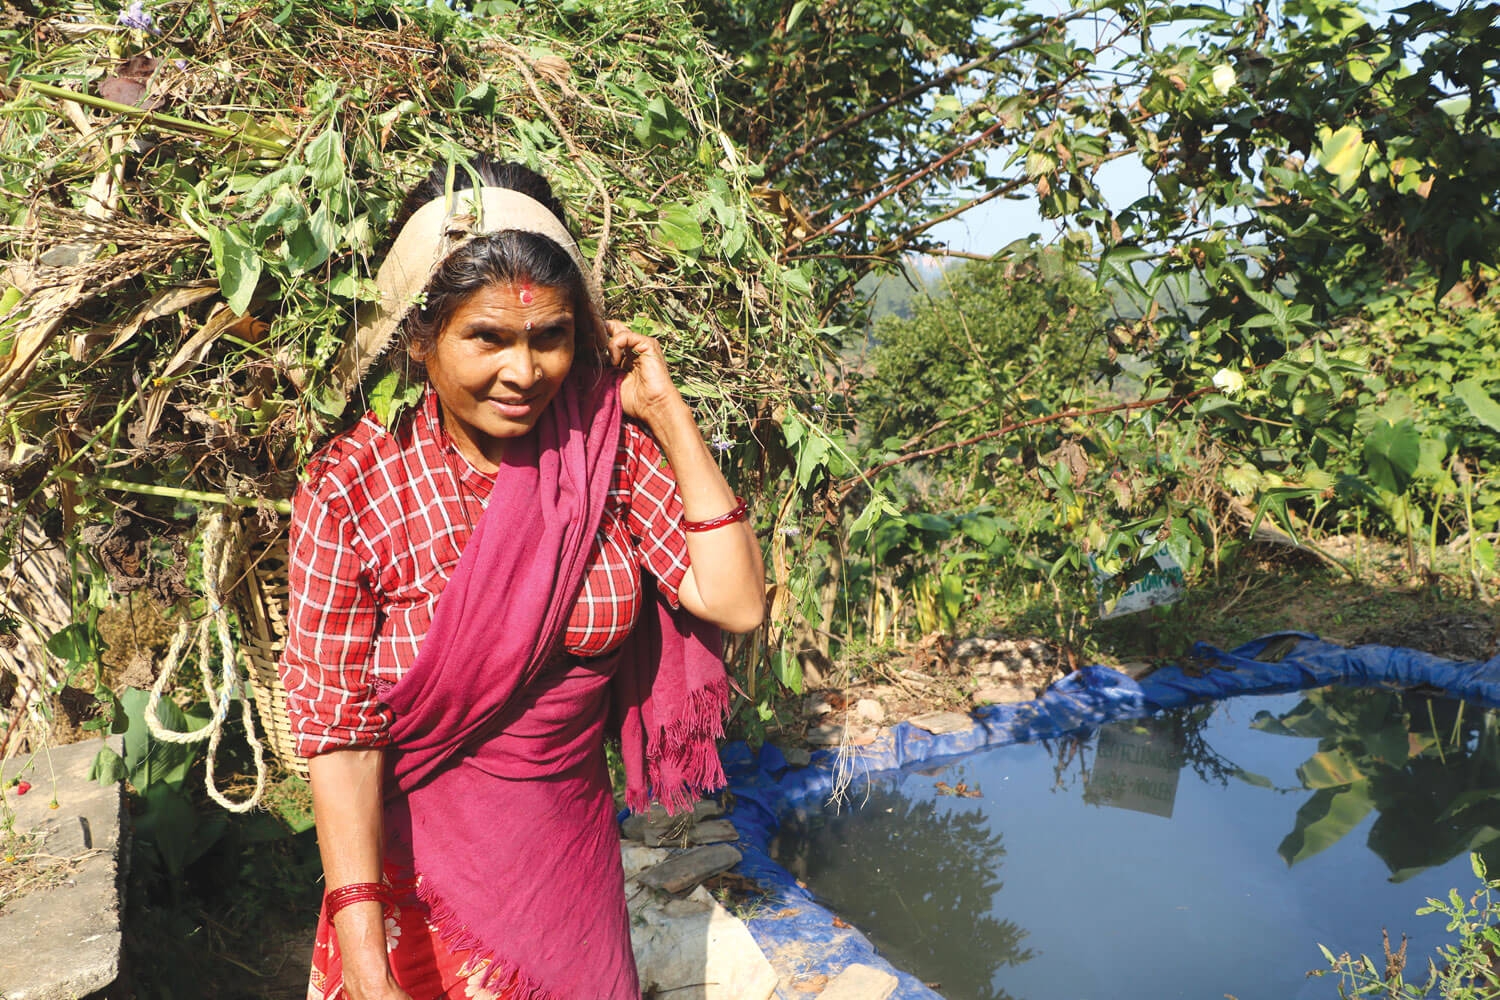 Women in climate hot spots face challenges adapting